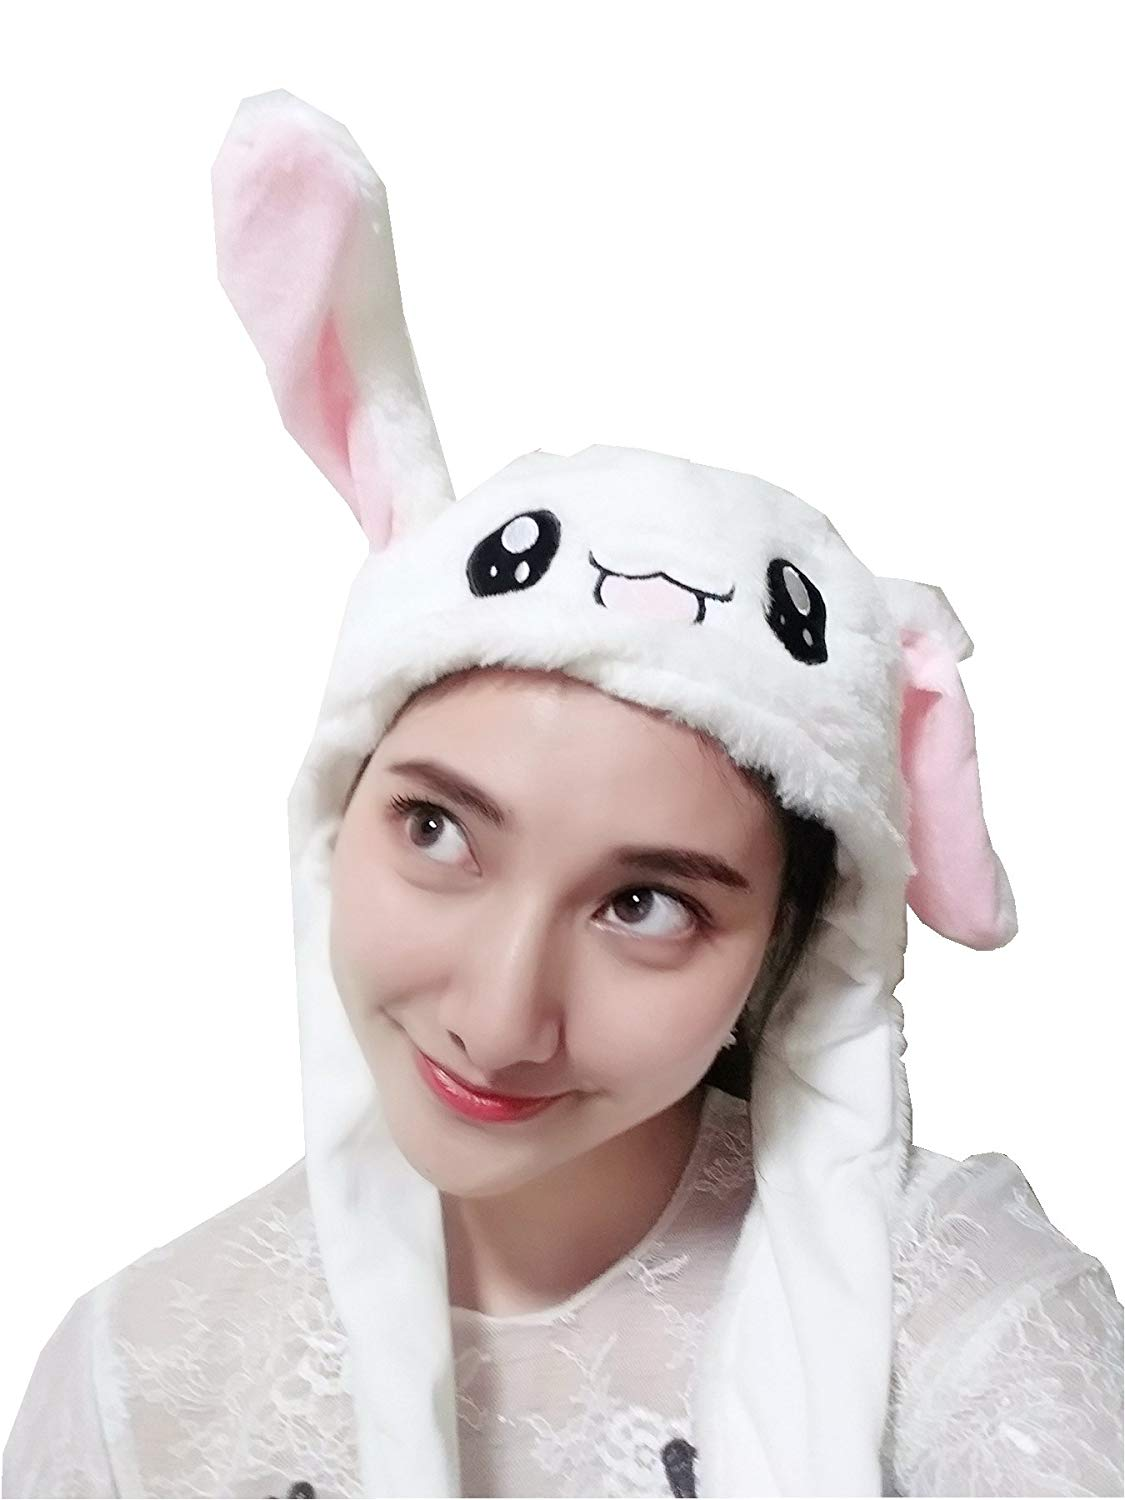 56342aa4982 Funny Rabbit Ear Hat When You Pressing The Paws Bunny Ears Can Shake Cute  White Animal